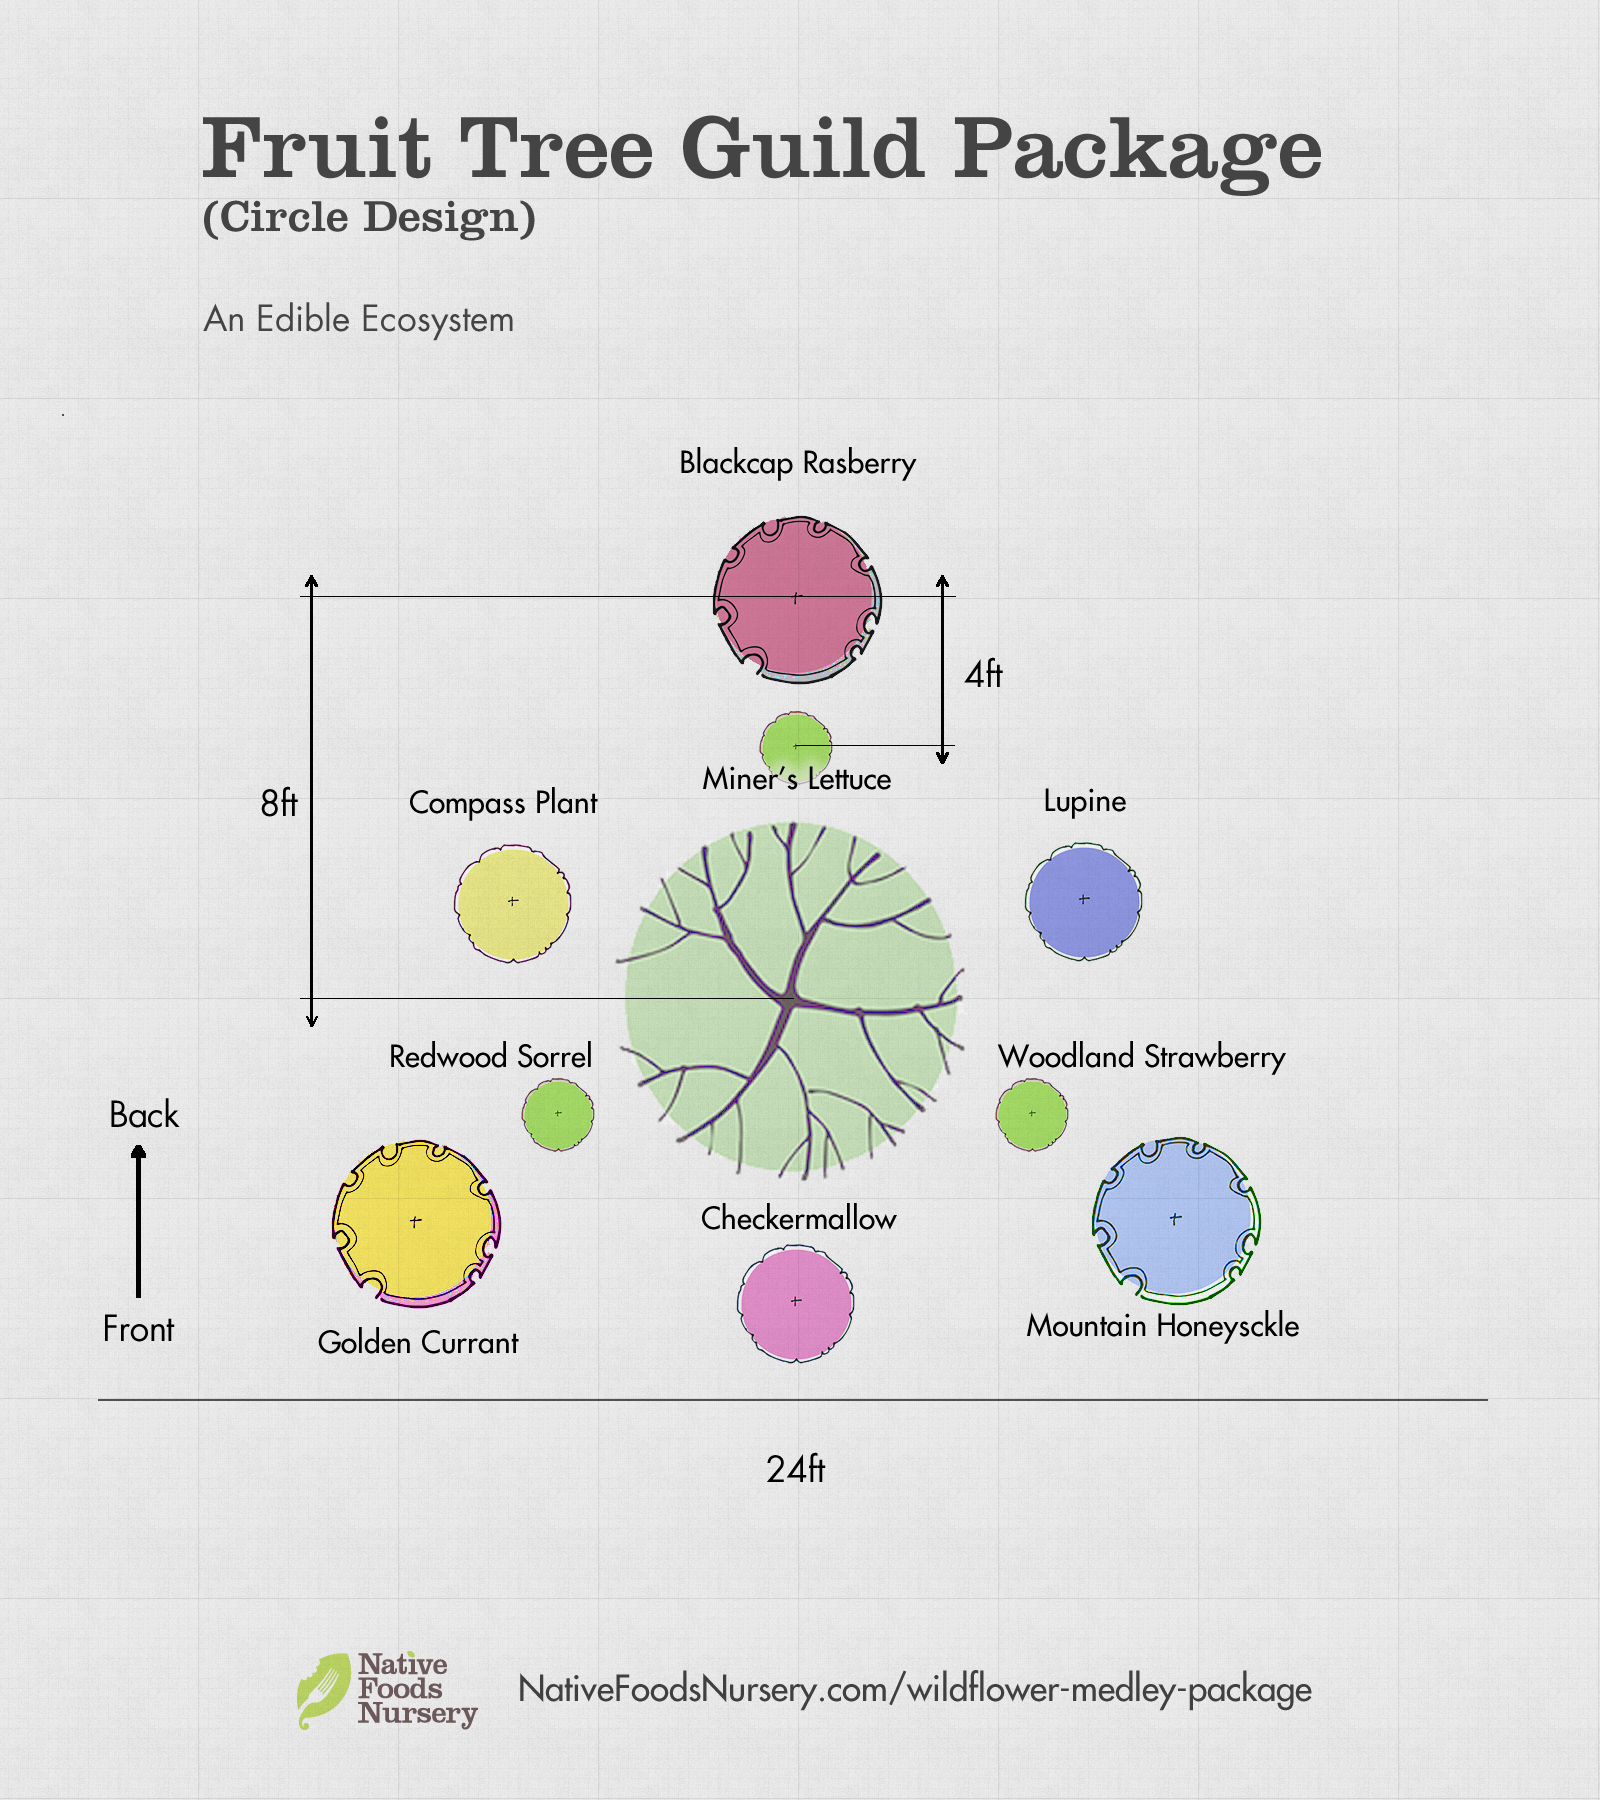 fruit-tree-guild-package.jpg